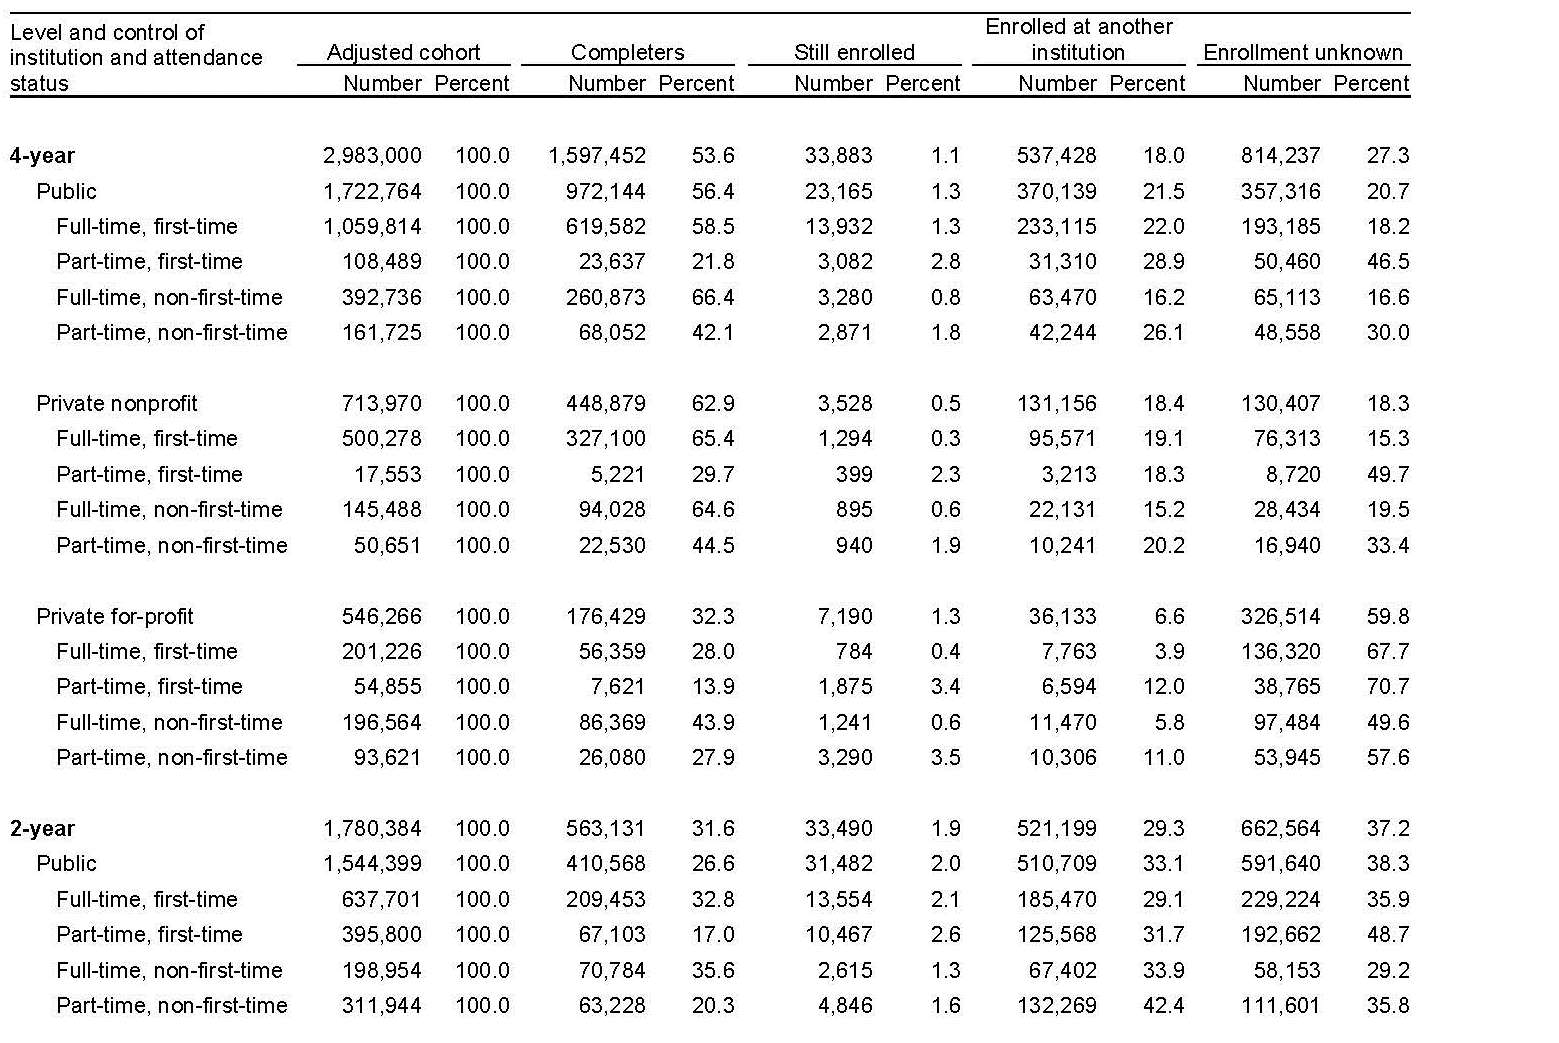 Table shows enrollment broken down by institution type (public or private, 4-year or 2-year, for-profit or nonprofit), student characteristics (full-time first-time, part-time first-time, full-time non-first-time, and part-time non-first time), and student outcomes (completed degree, still enrolled, enrolled at another institution, enrollment unknown).